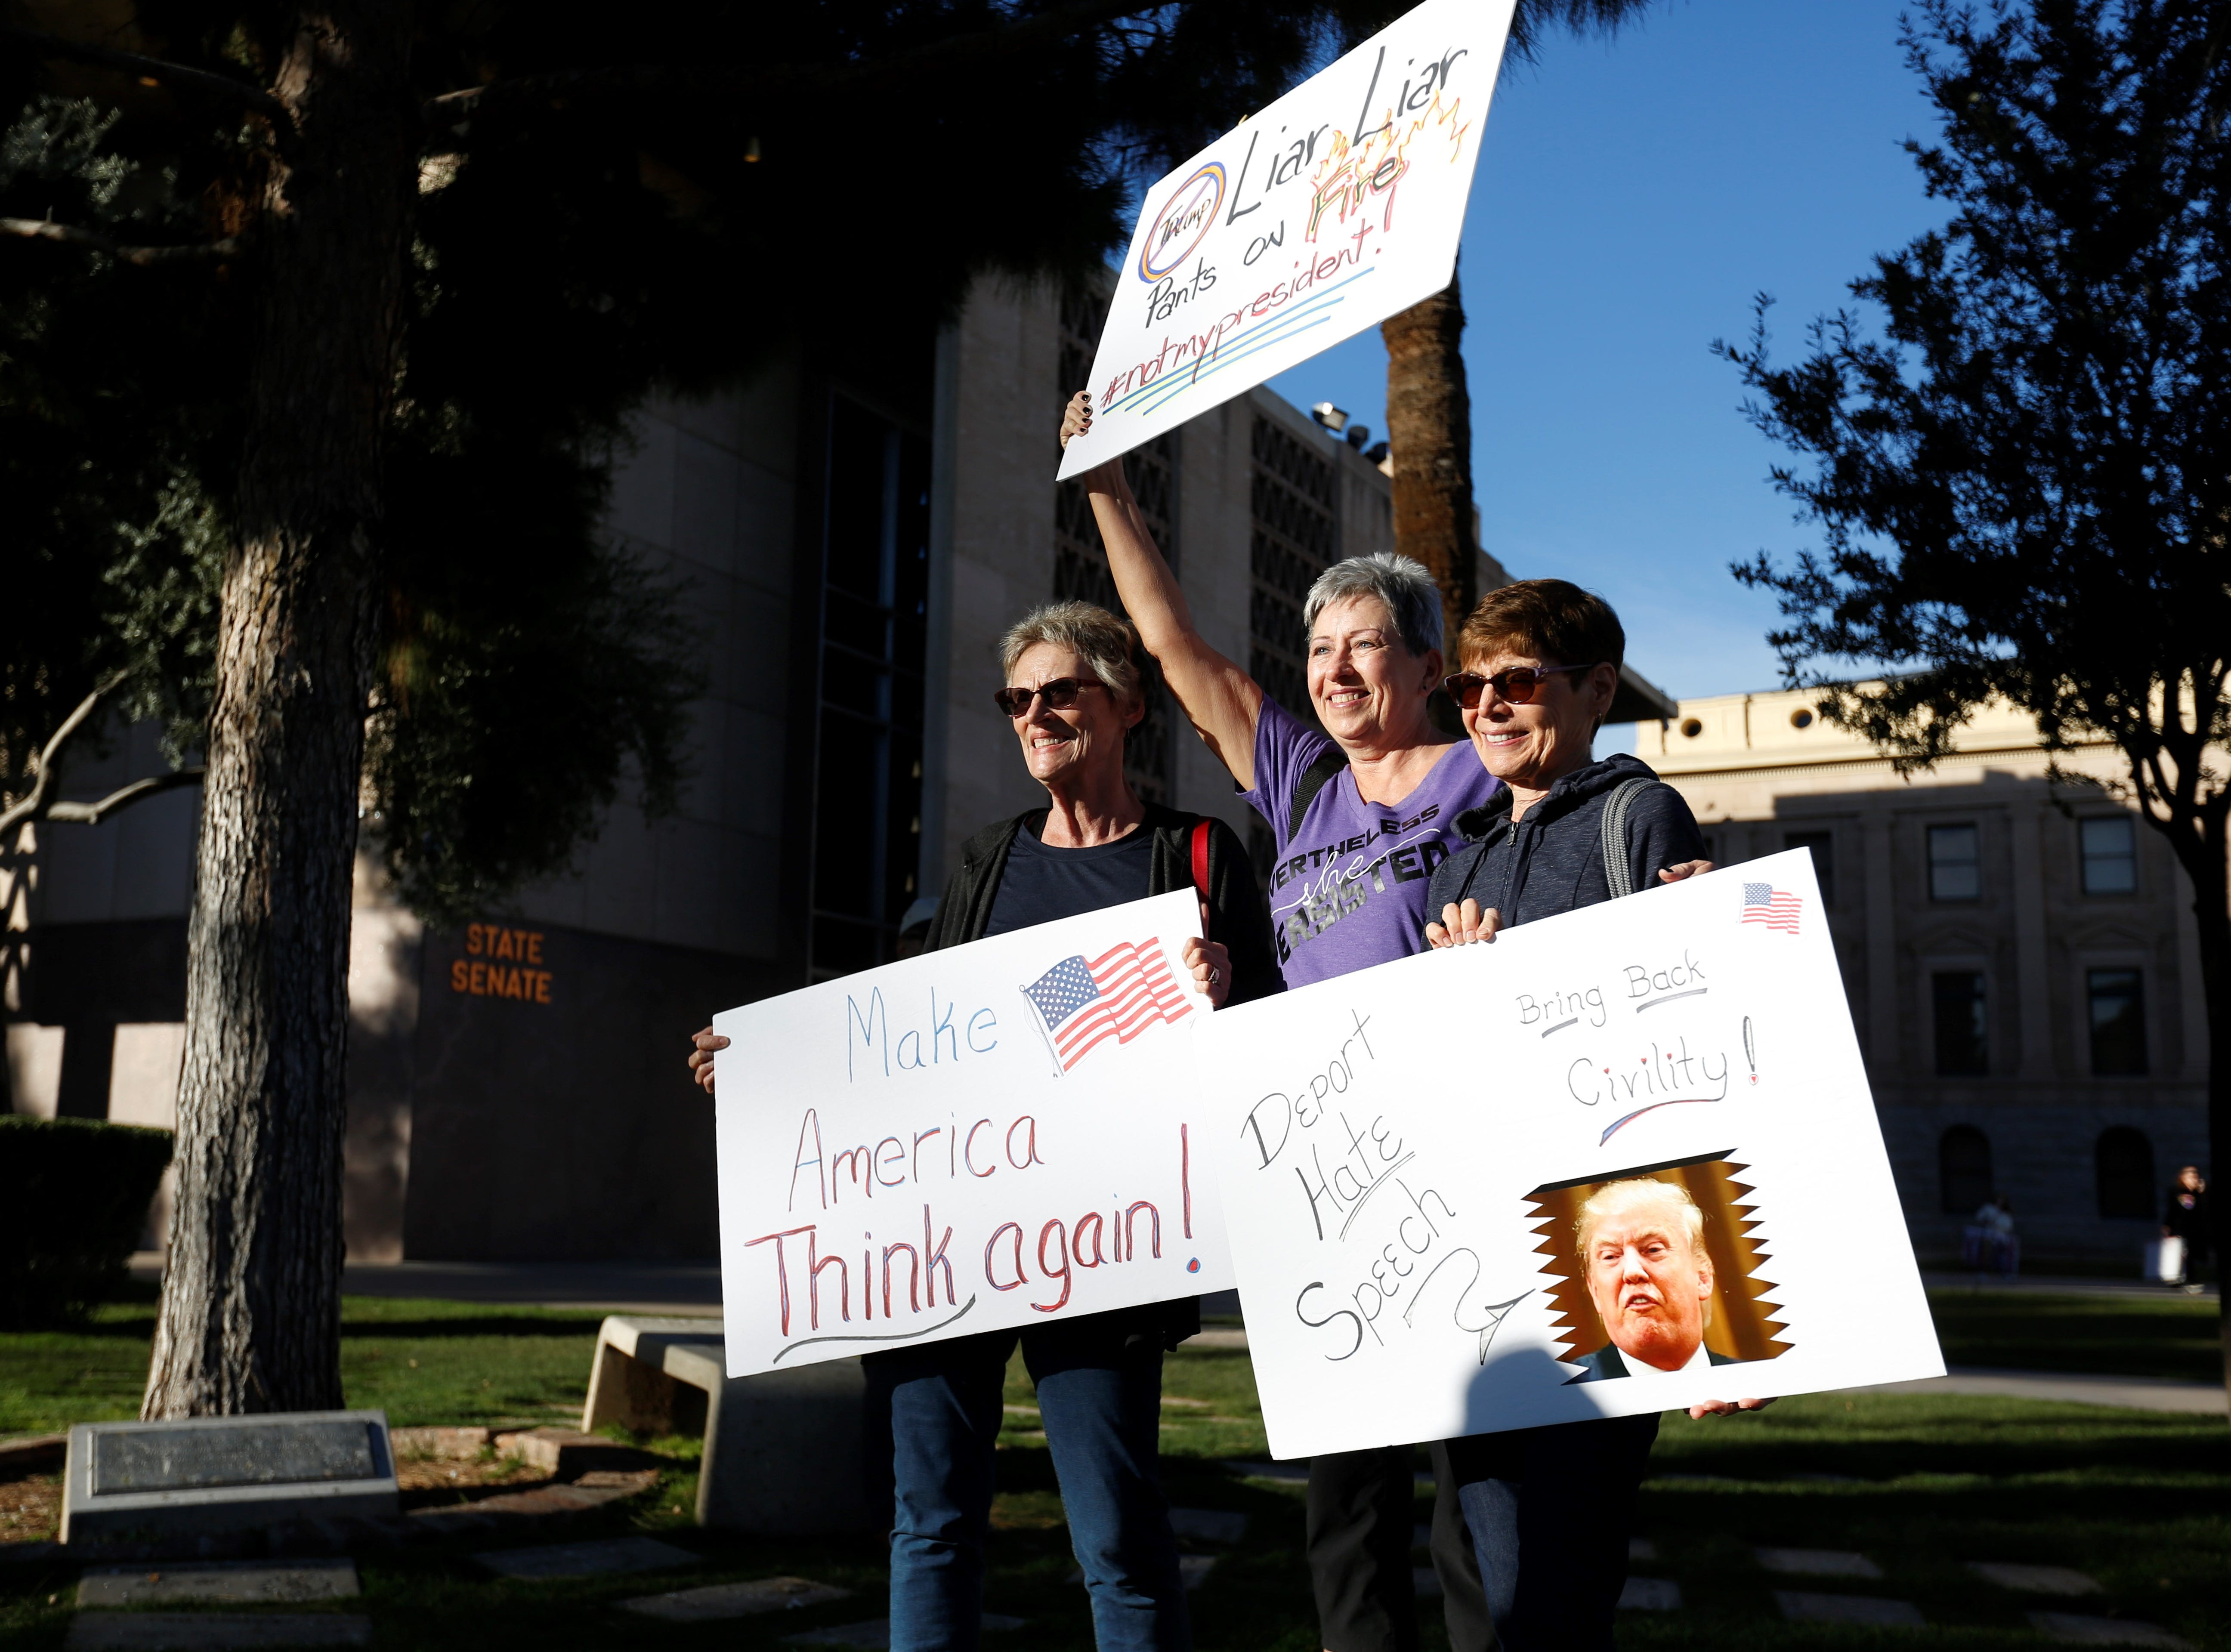 From left: Kathy Callison, Carla Llewellyn and Louise Honikel attend their the Women's March together for the third time at the Arizona Capitol, Jan. 19, 2019.